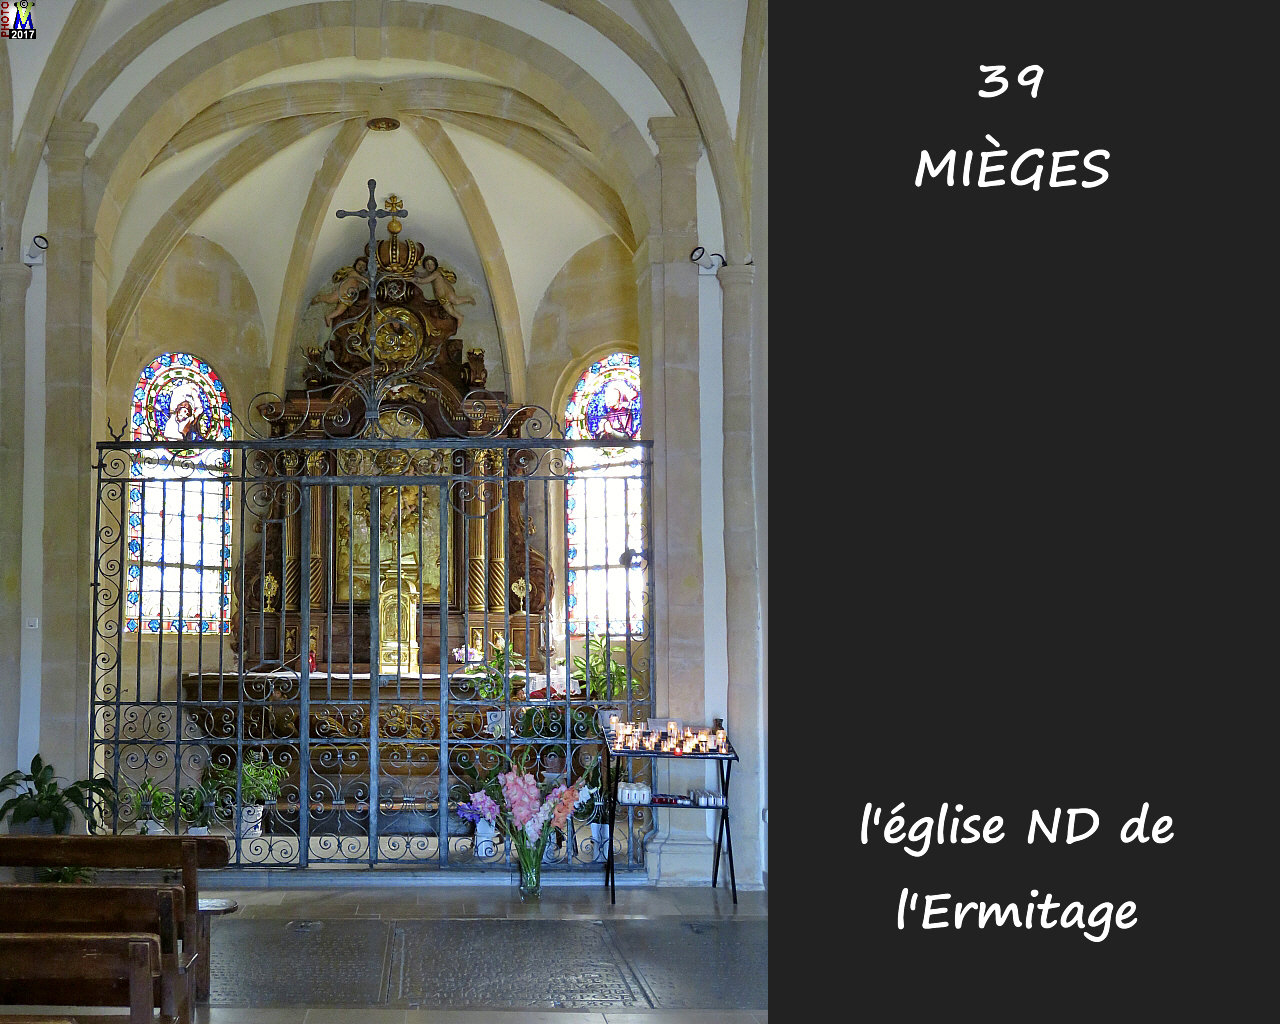 39MIEGES_Ermitage_122.jpg